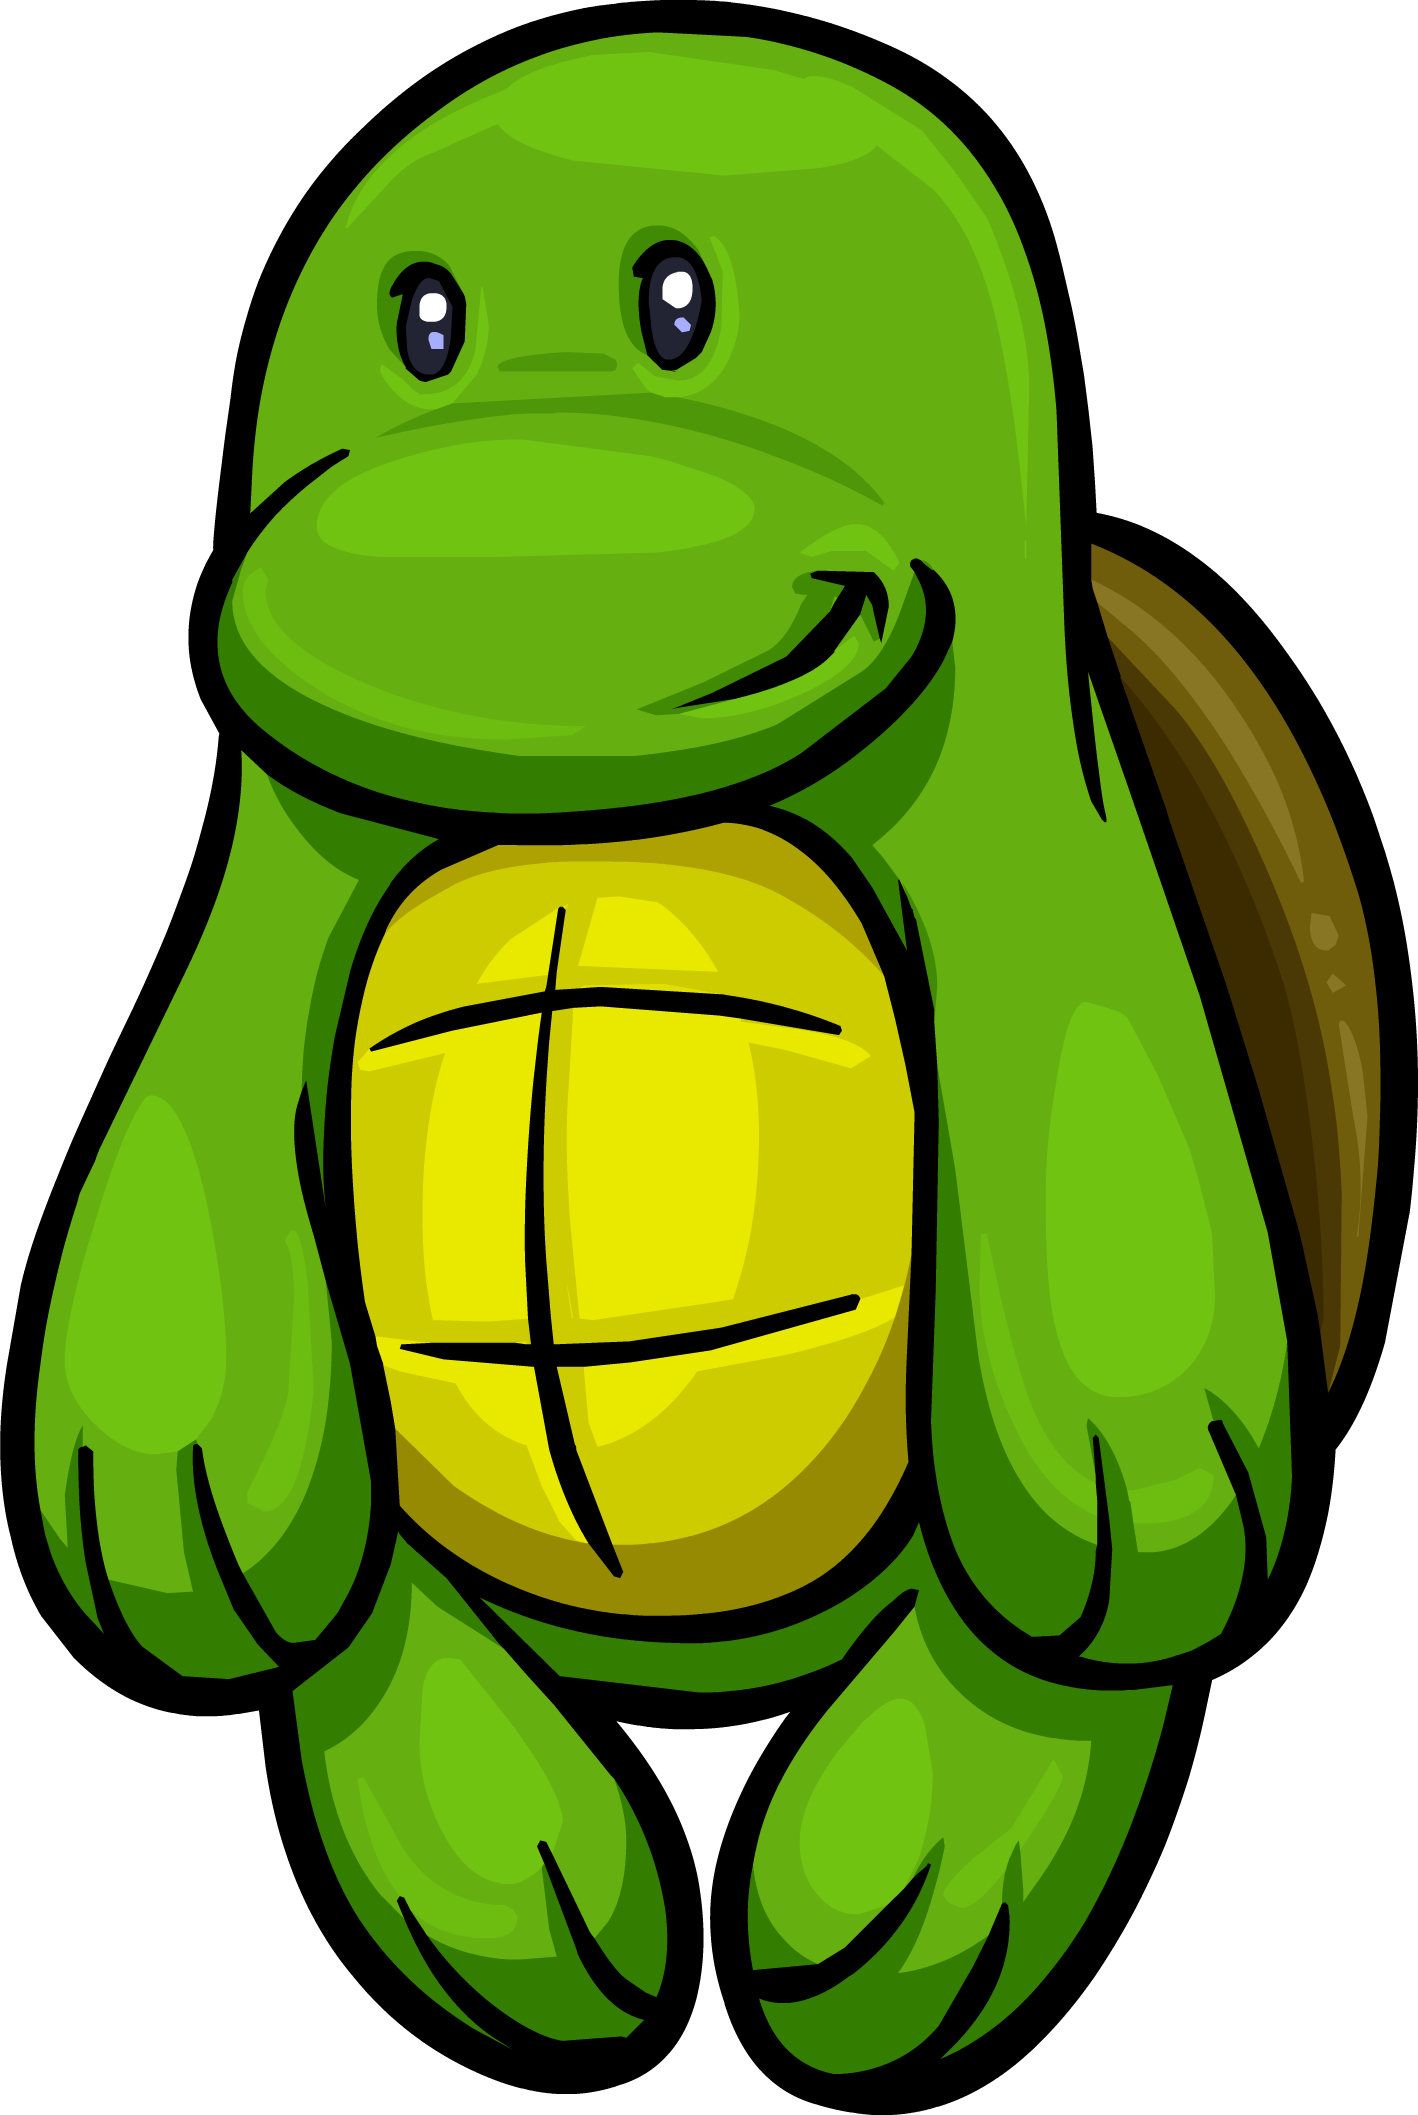 Pet clipart pet tortoise. Image turtle item icon